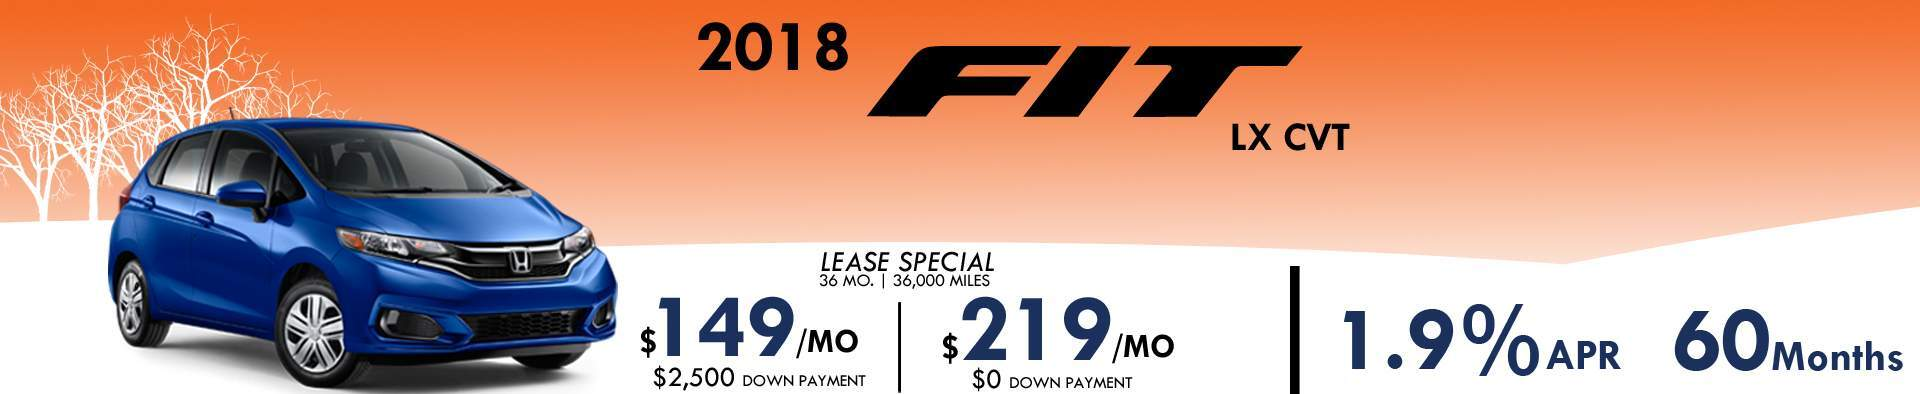 2018 Fit January Special 1.9% for 60 Months